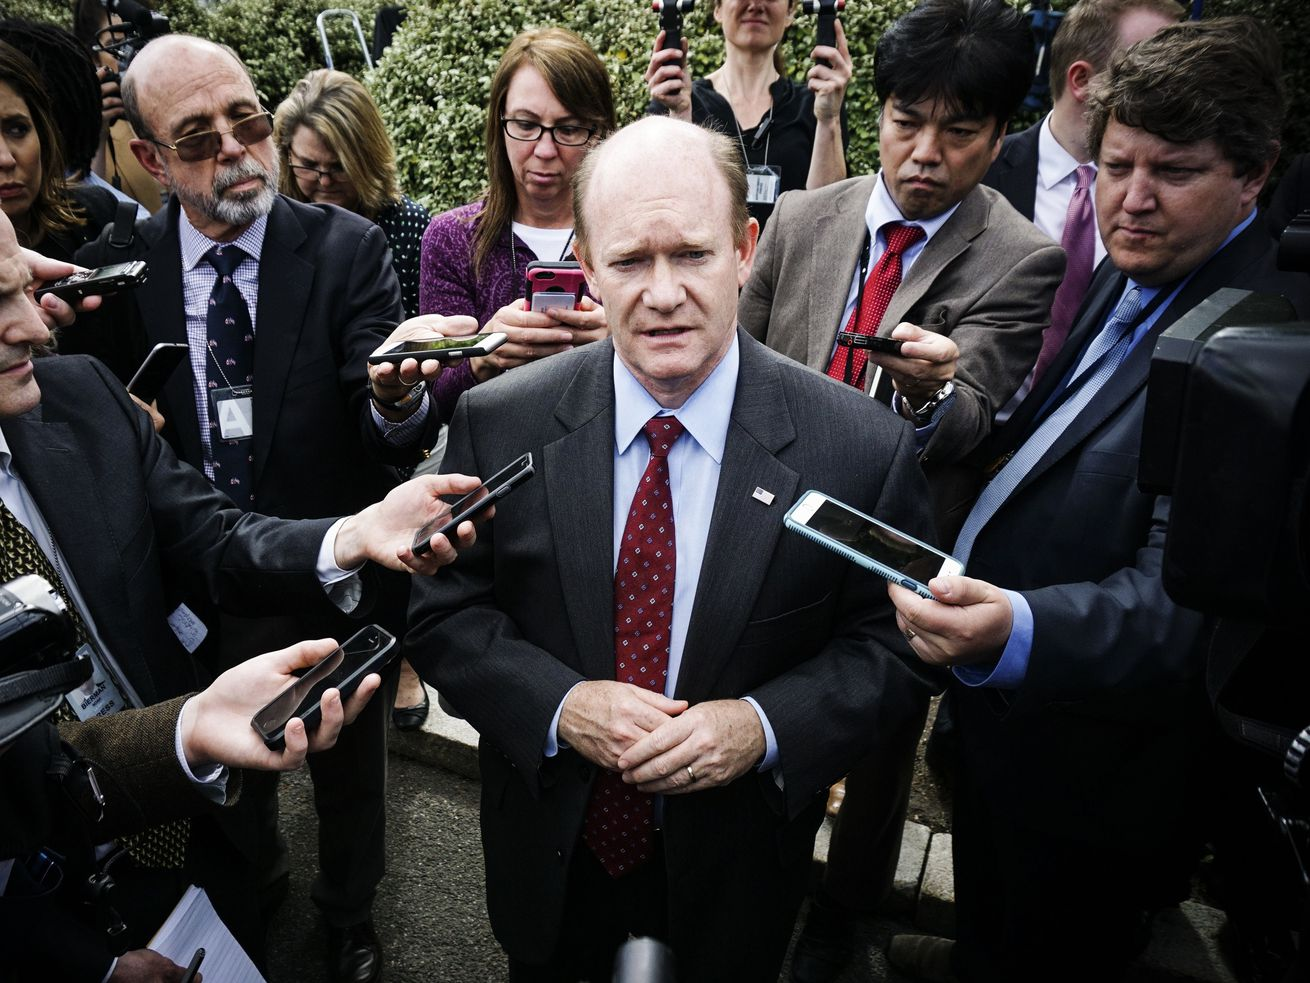 Sen. Chris Coons (D-DE) speaks to reporters after a briefing in April last year for US senators on North Korea.